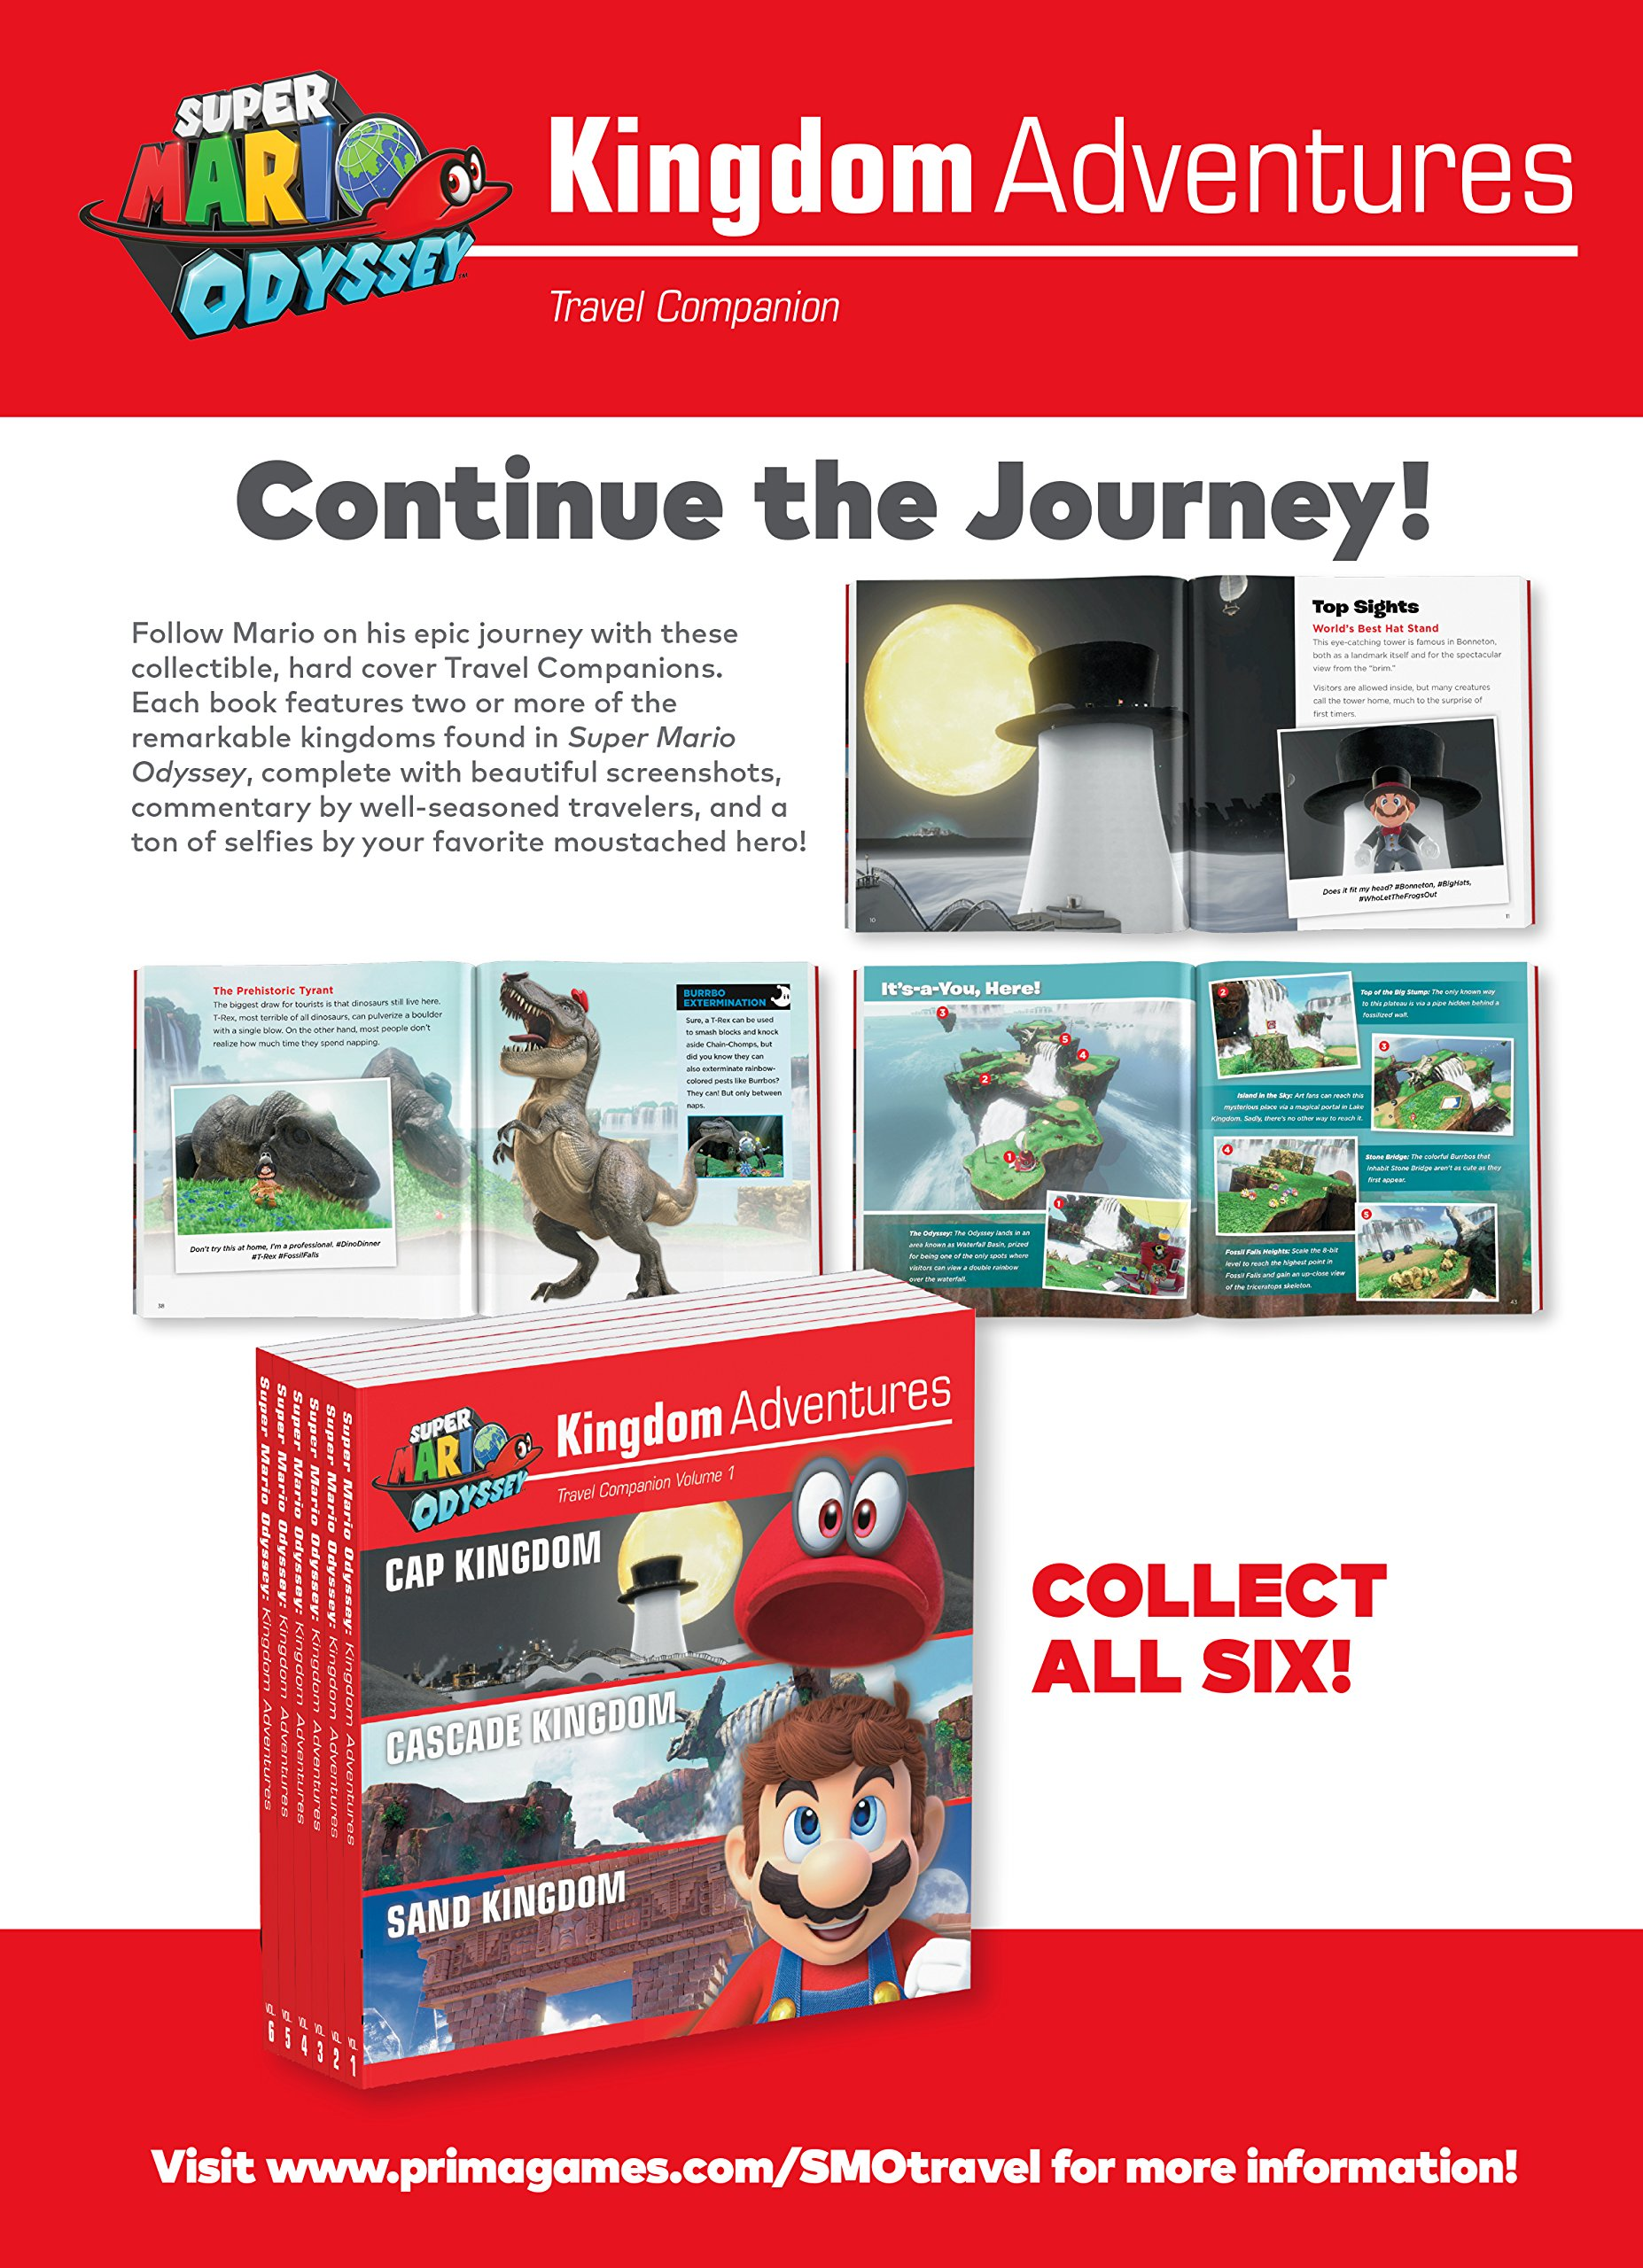 Super Mario Odyssey: Kingdom Adventures, Vol. 1 Idioma Inglés: Amazon.es: Walsh, Doug, Walsh, Doug: Libros en idiomas extranjeros